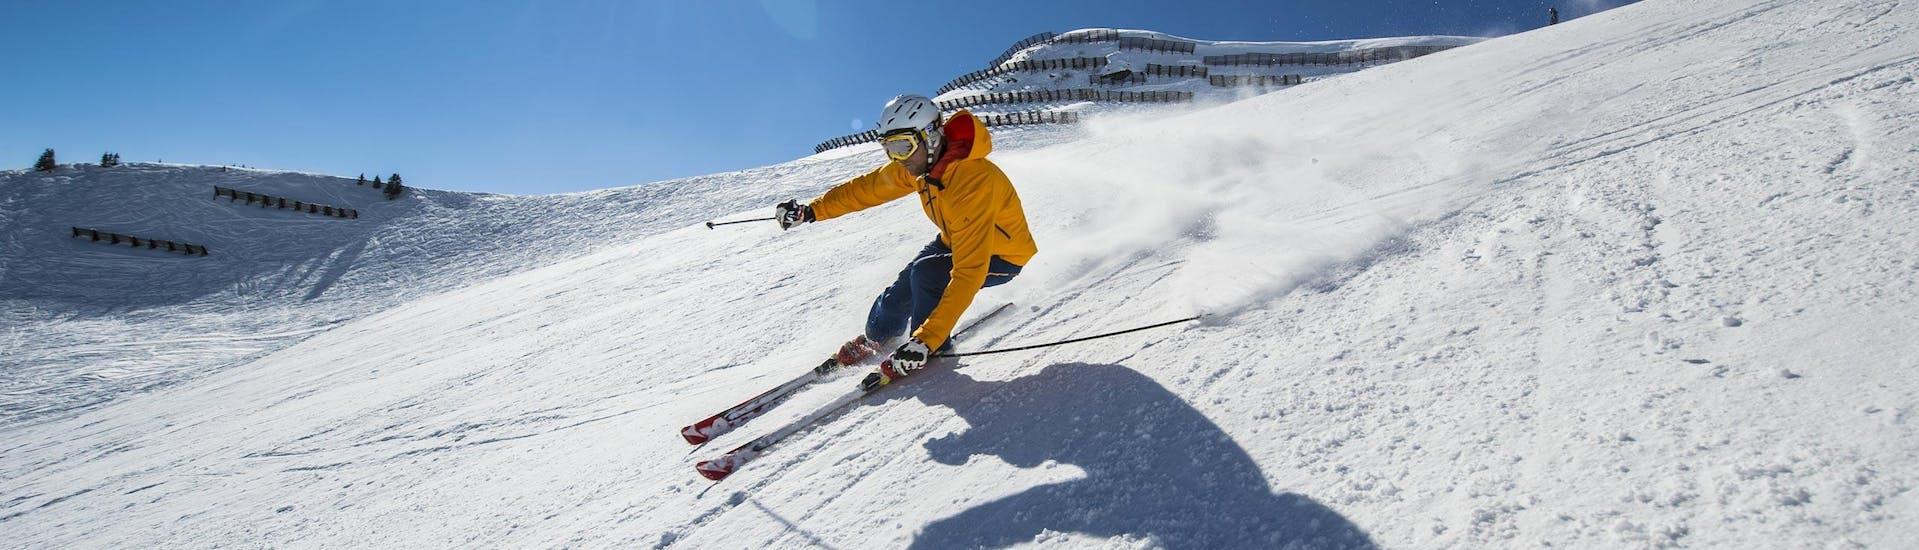 Adult Ski Lessons for Beginners: A skier is skiing down a sunny ski slope while participating in an activity offered by Skischule Waidring Steinplatte.